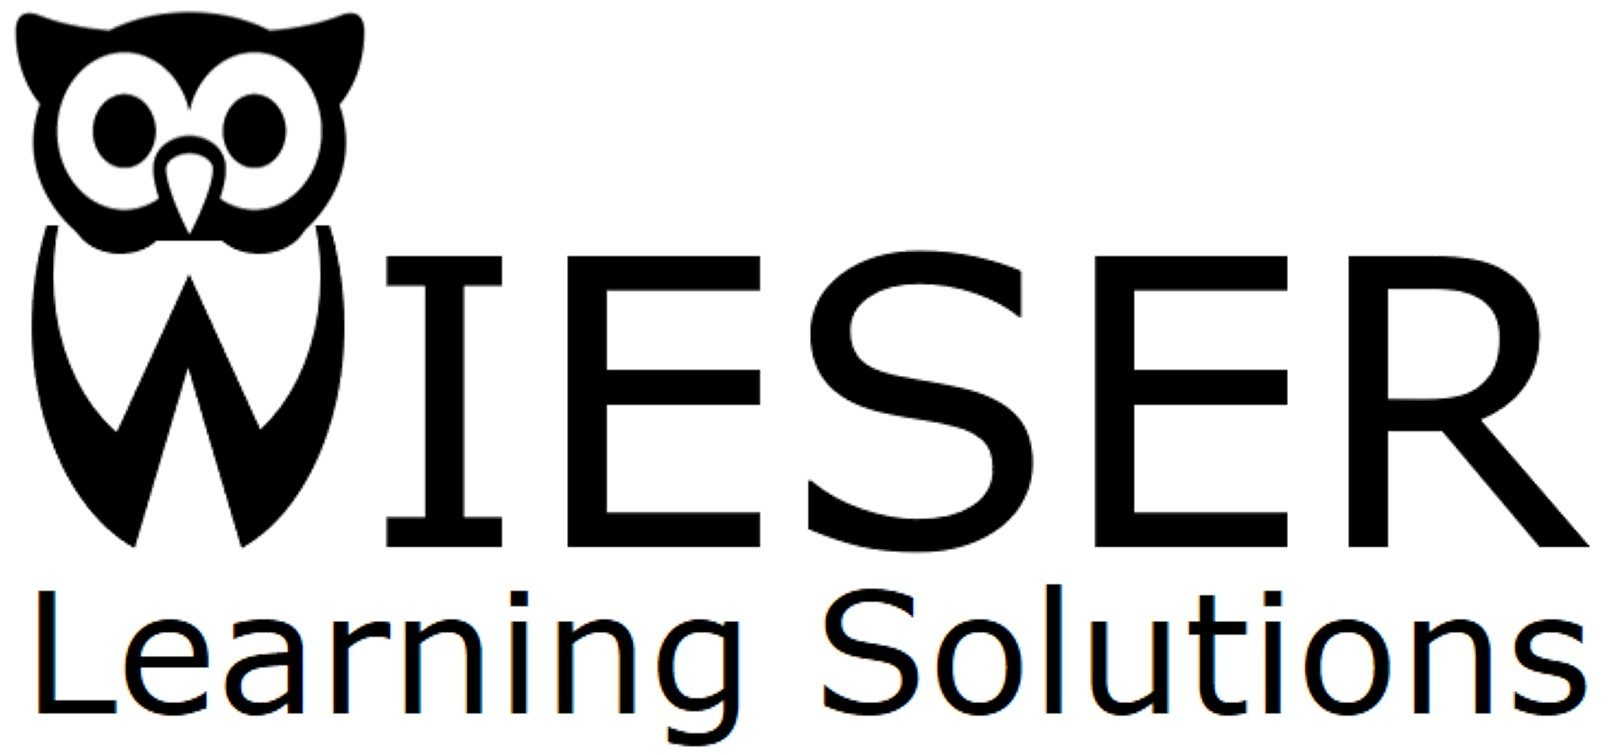 Wieser Learning Solutions, LLC